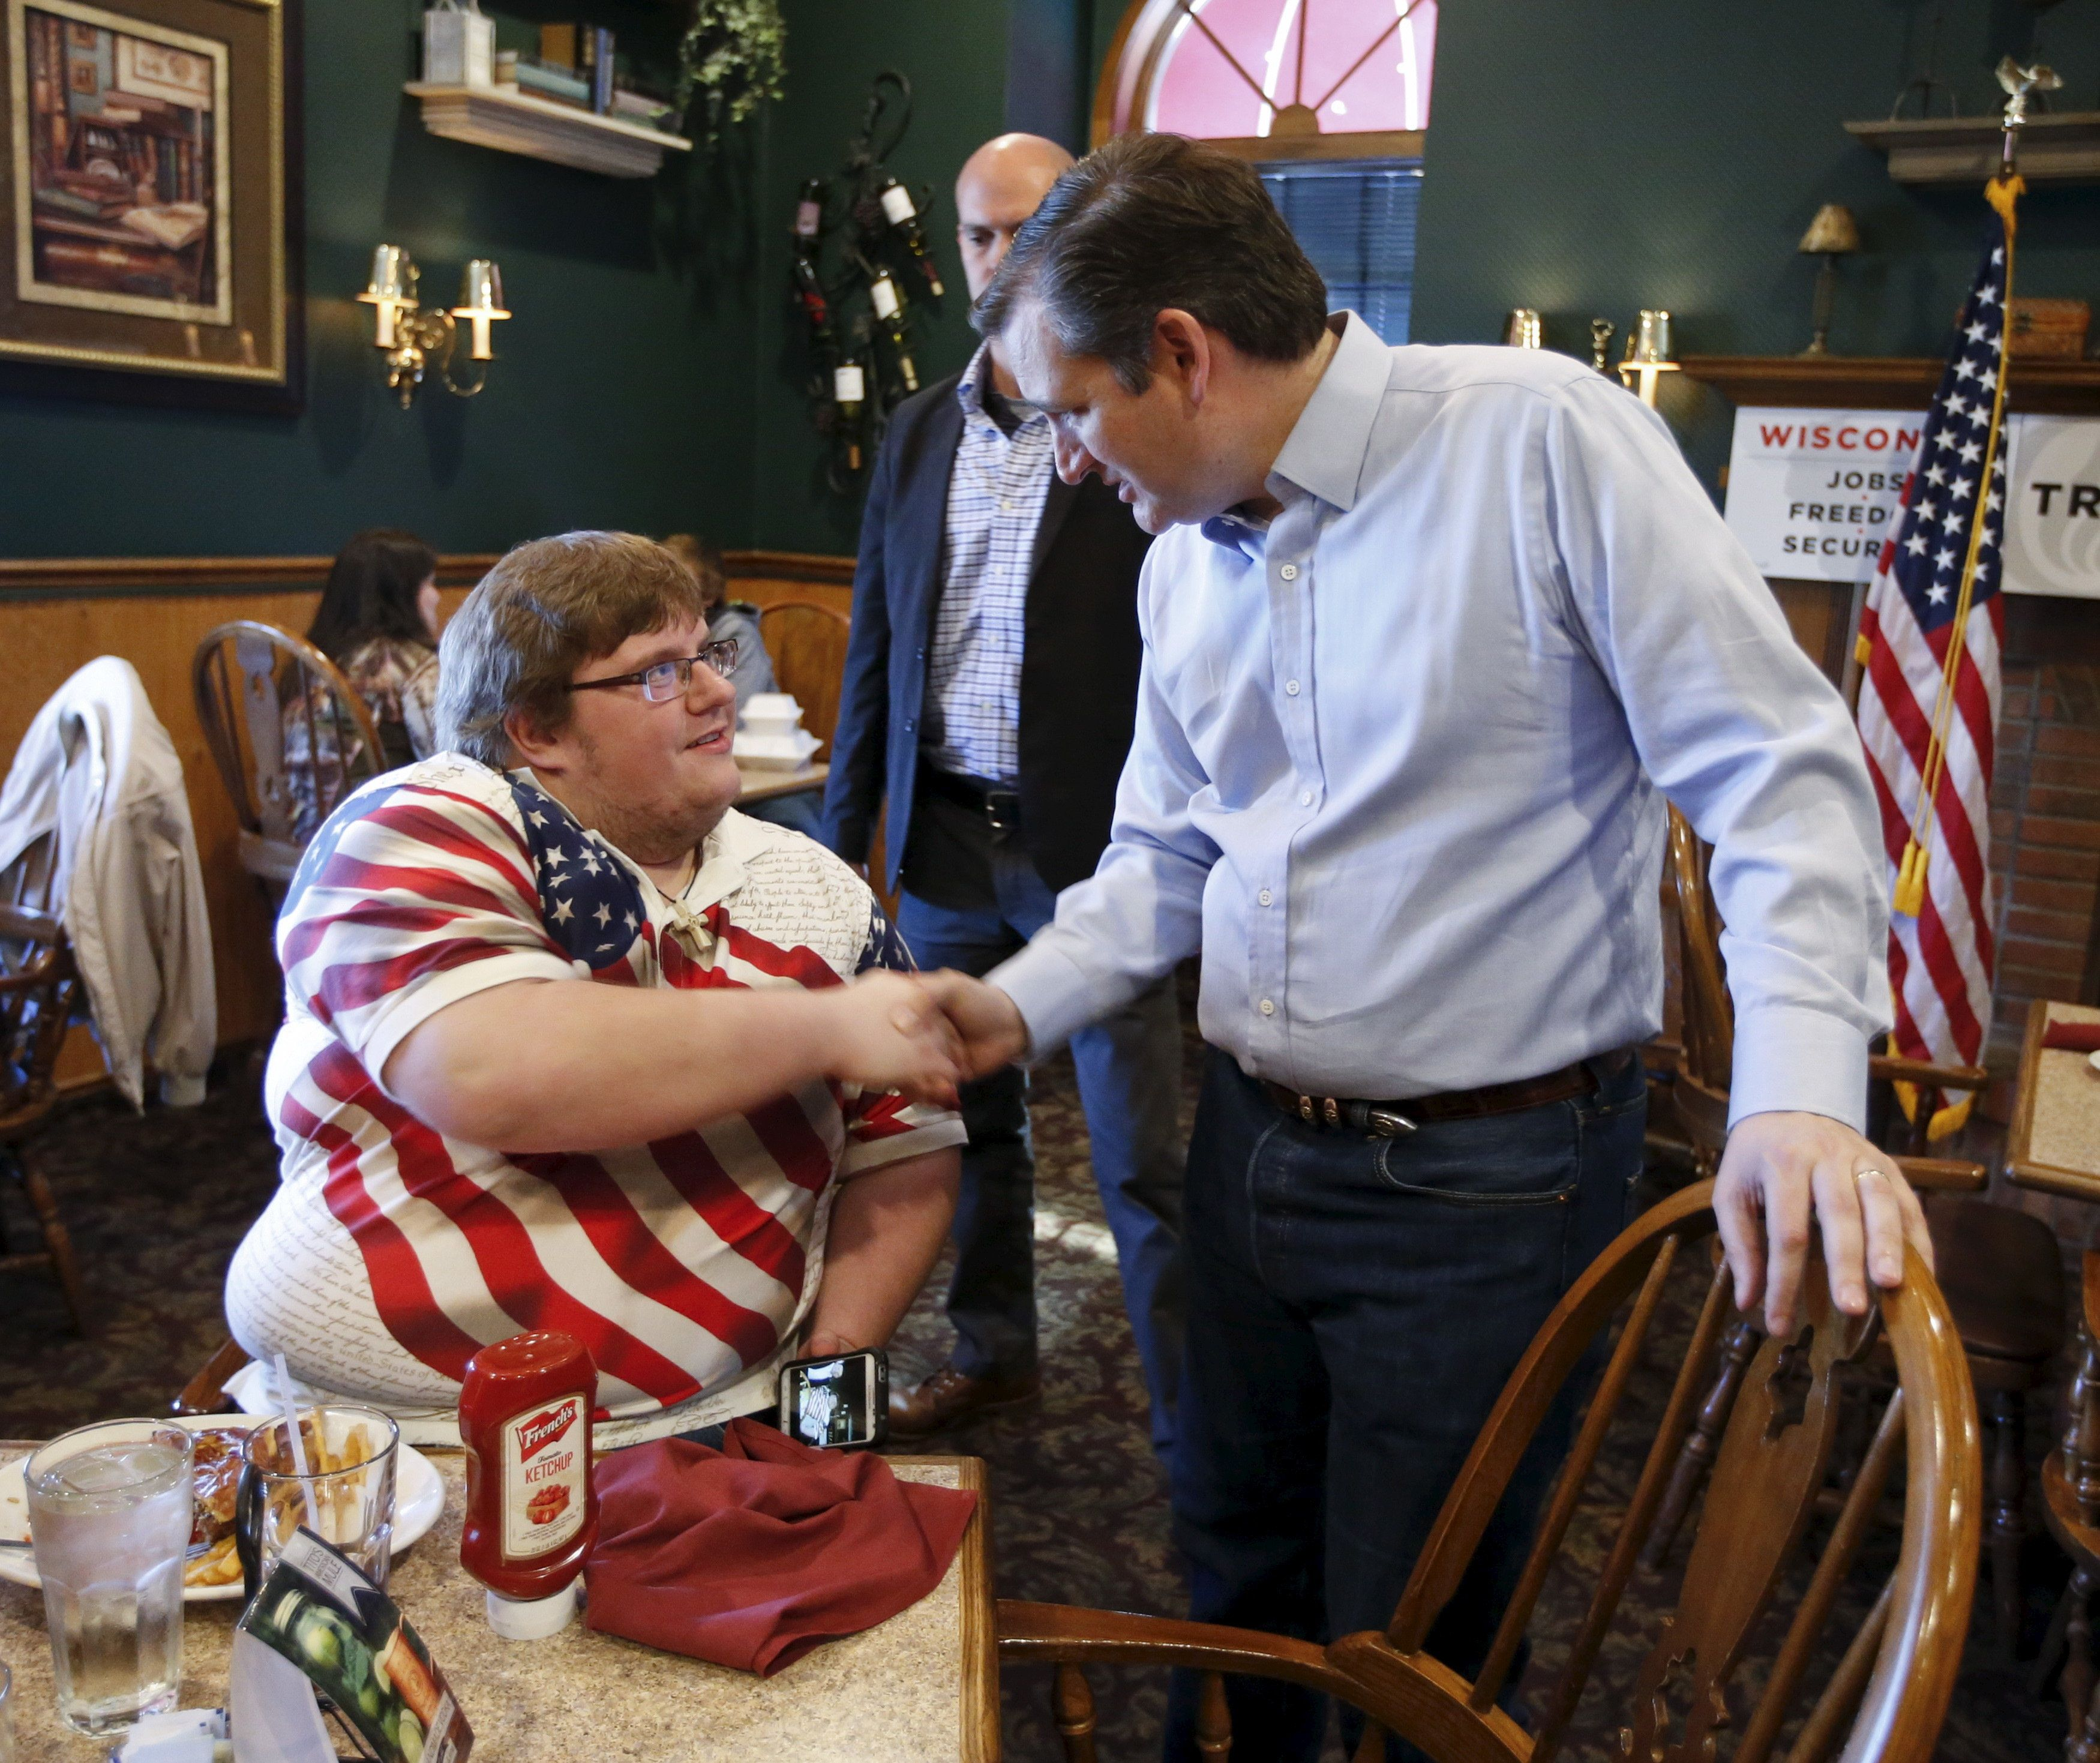 U.S. Republican presidential candidate Ted Cruz shakes hands with a 2510 Restaurant guest during a campaign stop in Wausau April 3, 2016. REUTERS/Kamil Krzaczynski